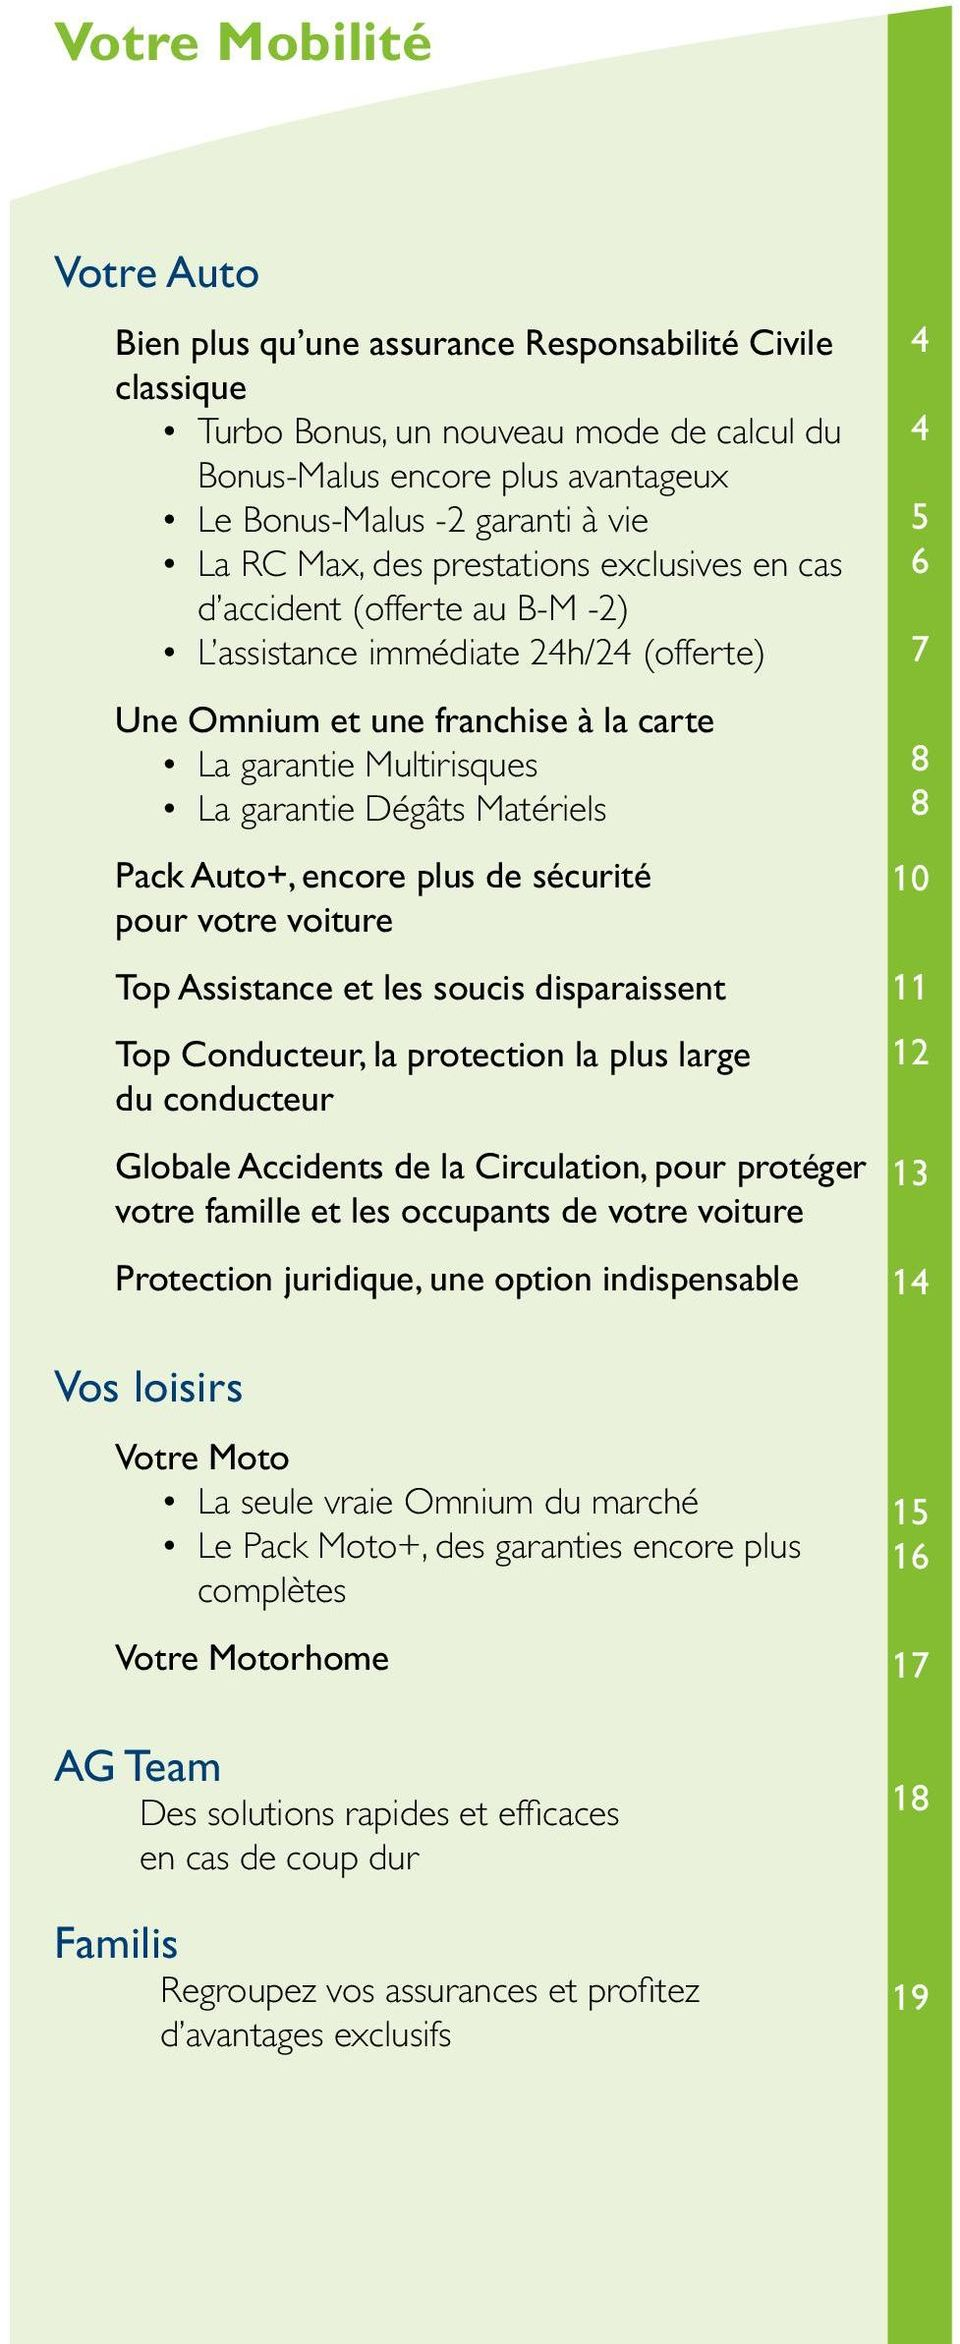 Matériels Pack Auto+, encore plus de sécurité pour votre voiture Top Assistance et les soucis disparaissent Top Conducteur, la protection la plus large du conducteur Globale Accidents de la